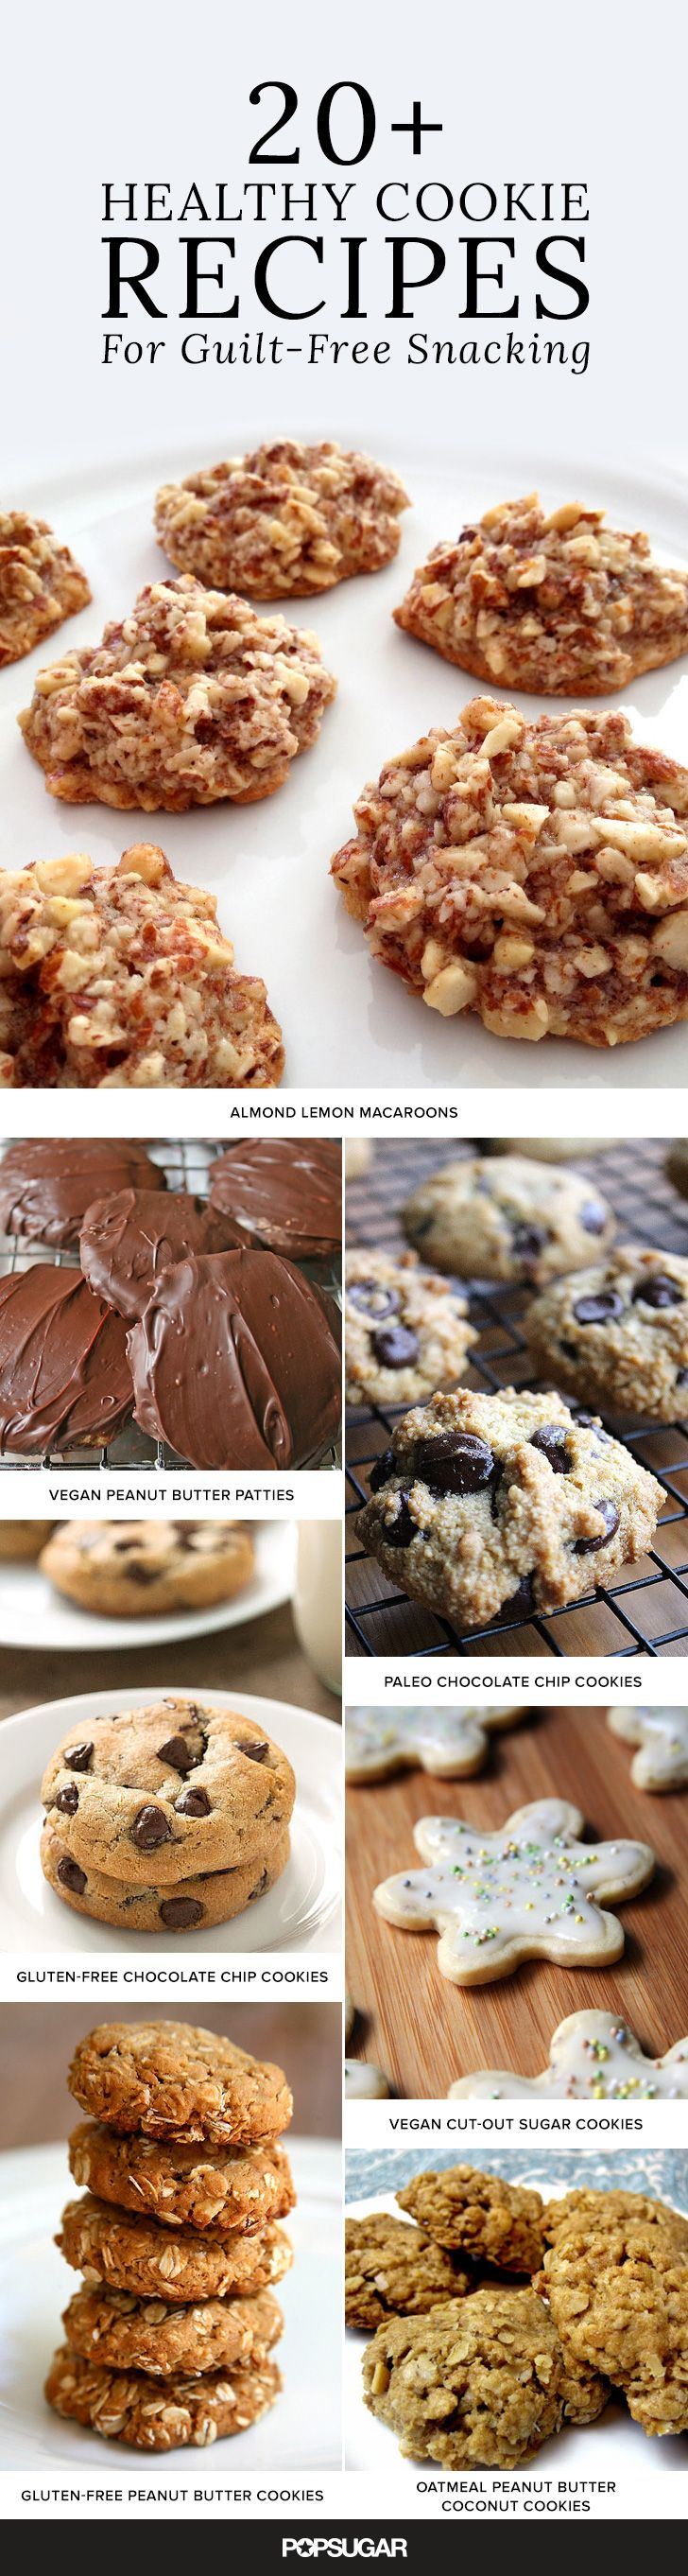 Baking cookies often leads to a predicament — one is never enough! Luckily, if you make any of our cookie recipes, indulging a little won't cause a problem.